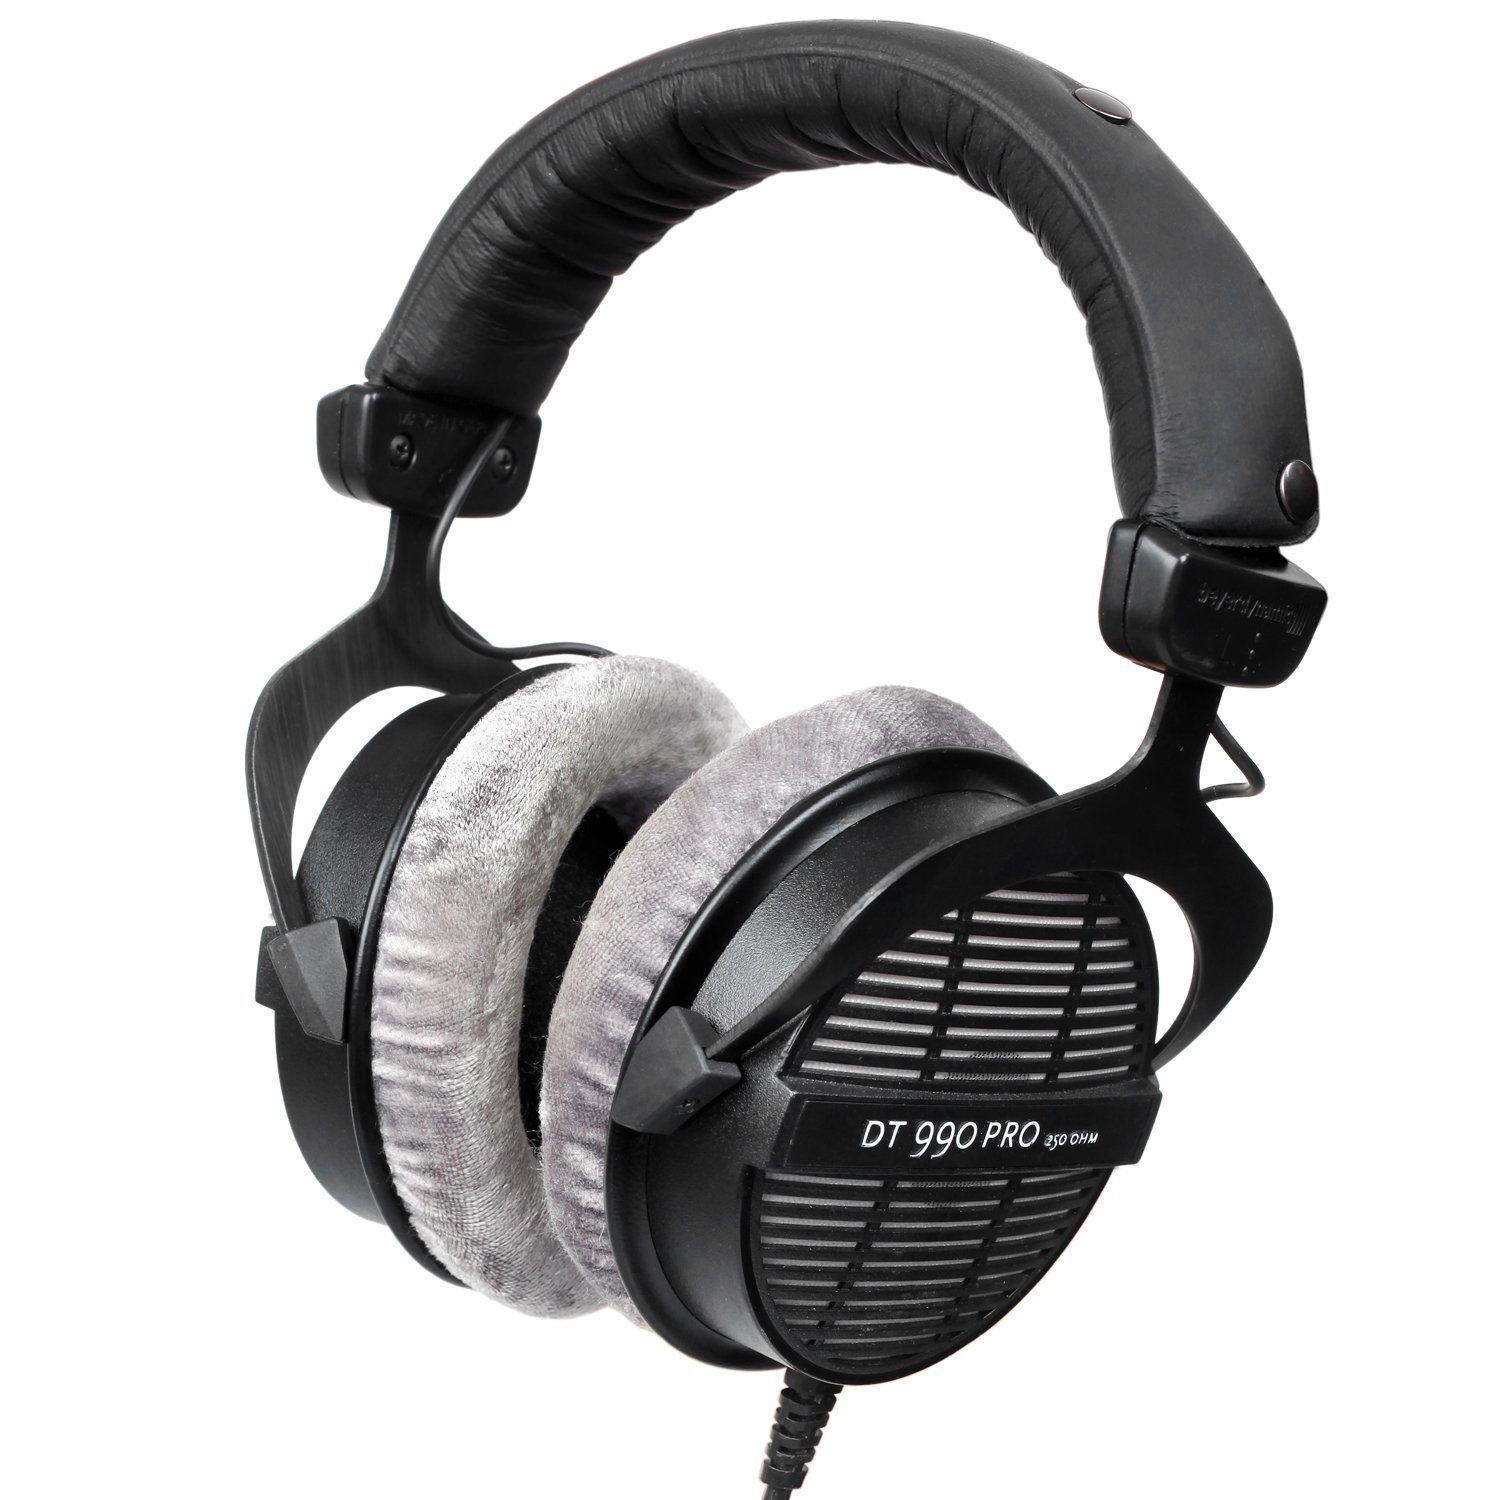 цена на Beyerdynamic DT 990 Pro 250 Ohm Hi-Fi headphones, Professional Studio Headsets, Open Back Headband headpones Made in Germany